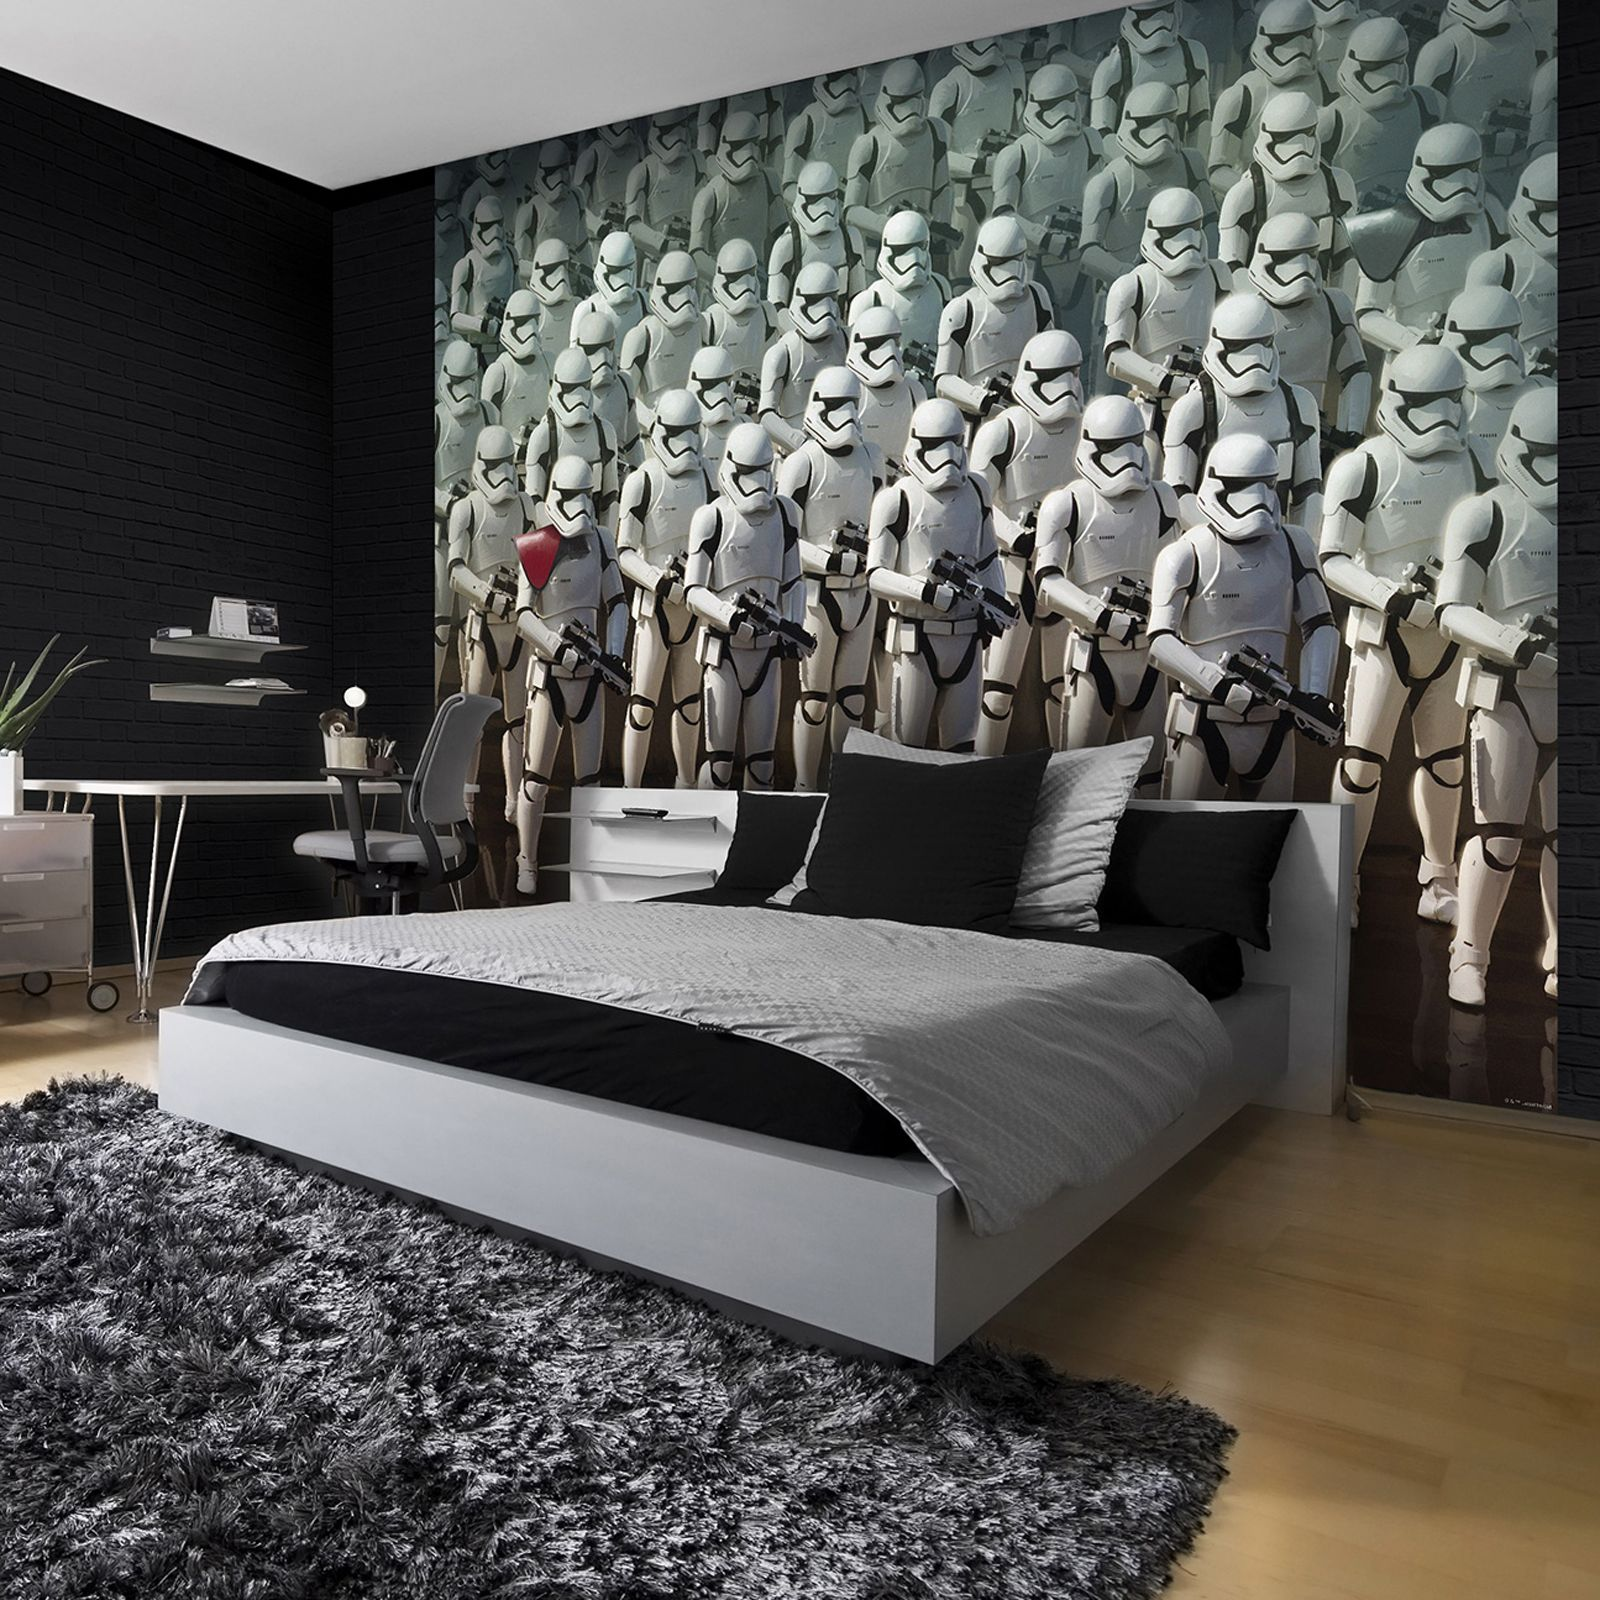 Star wars stormtrooper wall mural 254 x 184cm ebay for Bedroom wall mural designs